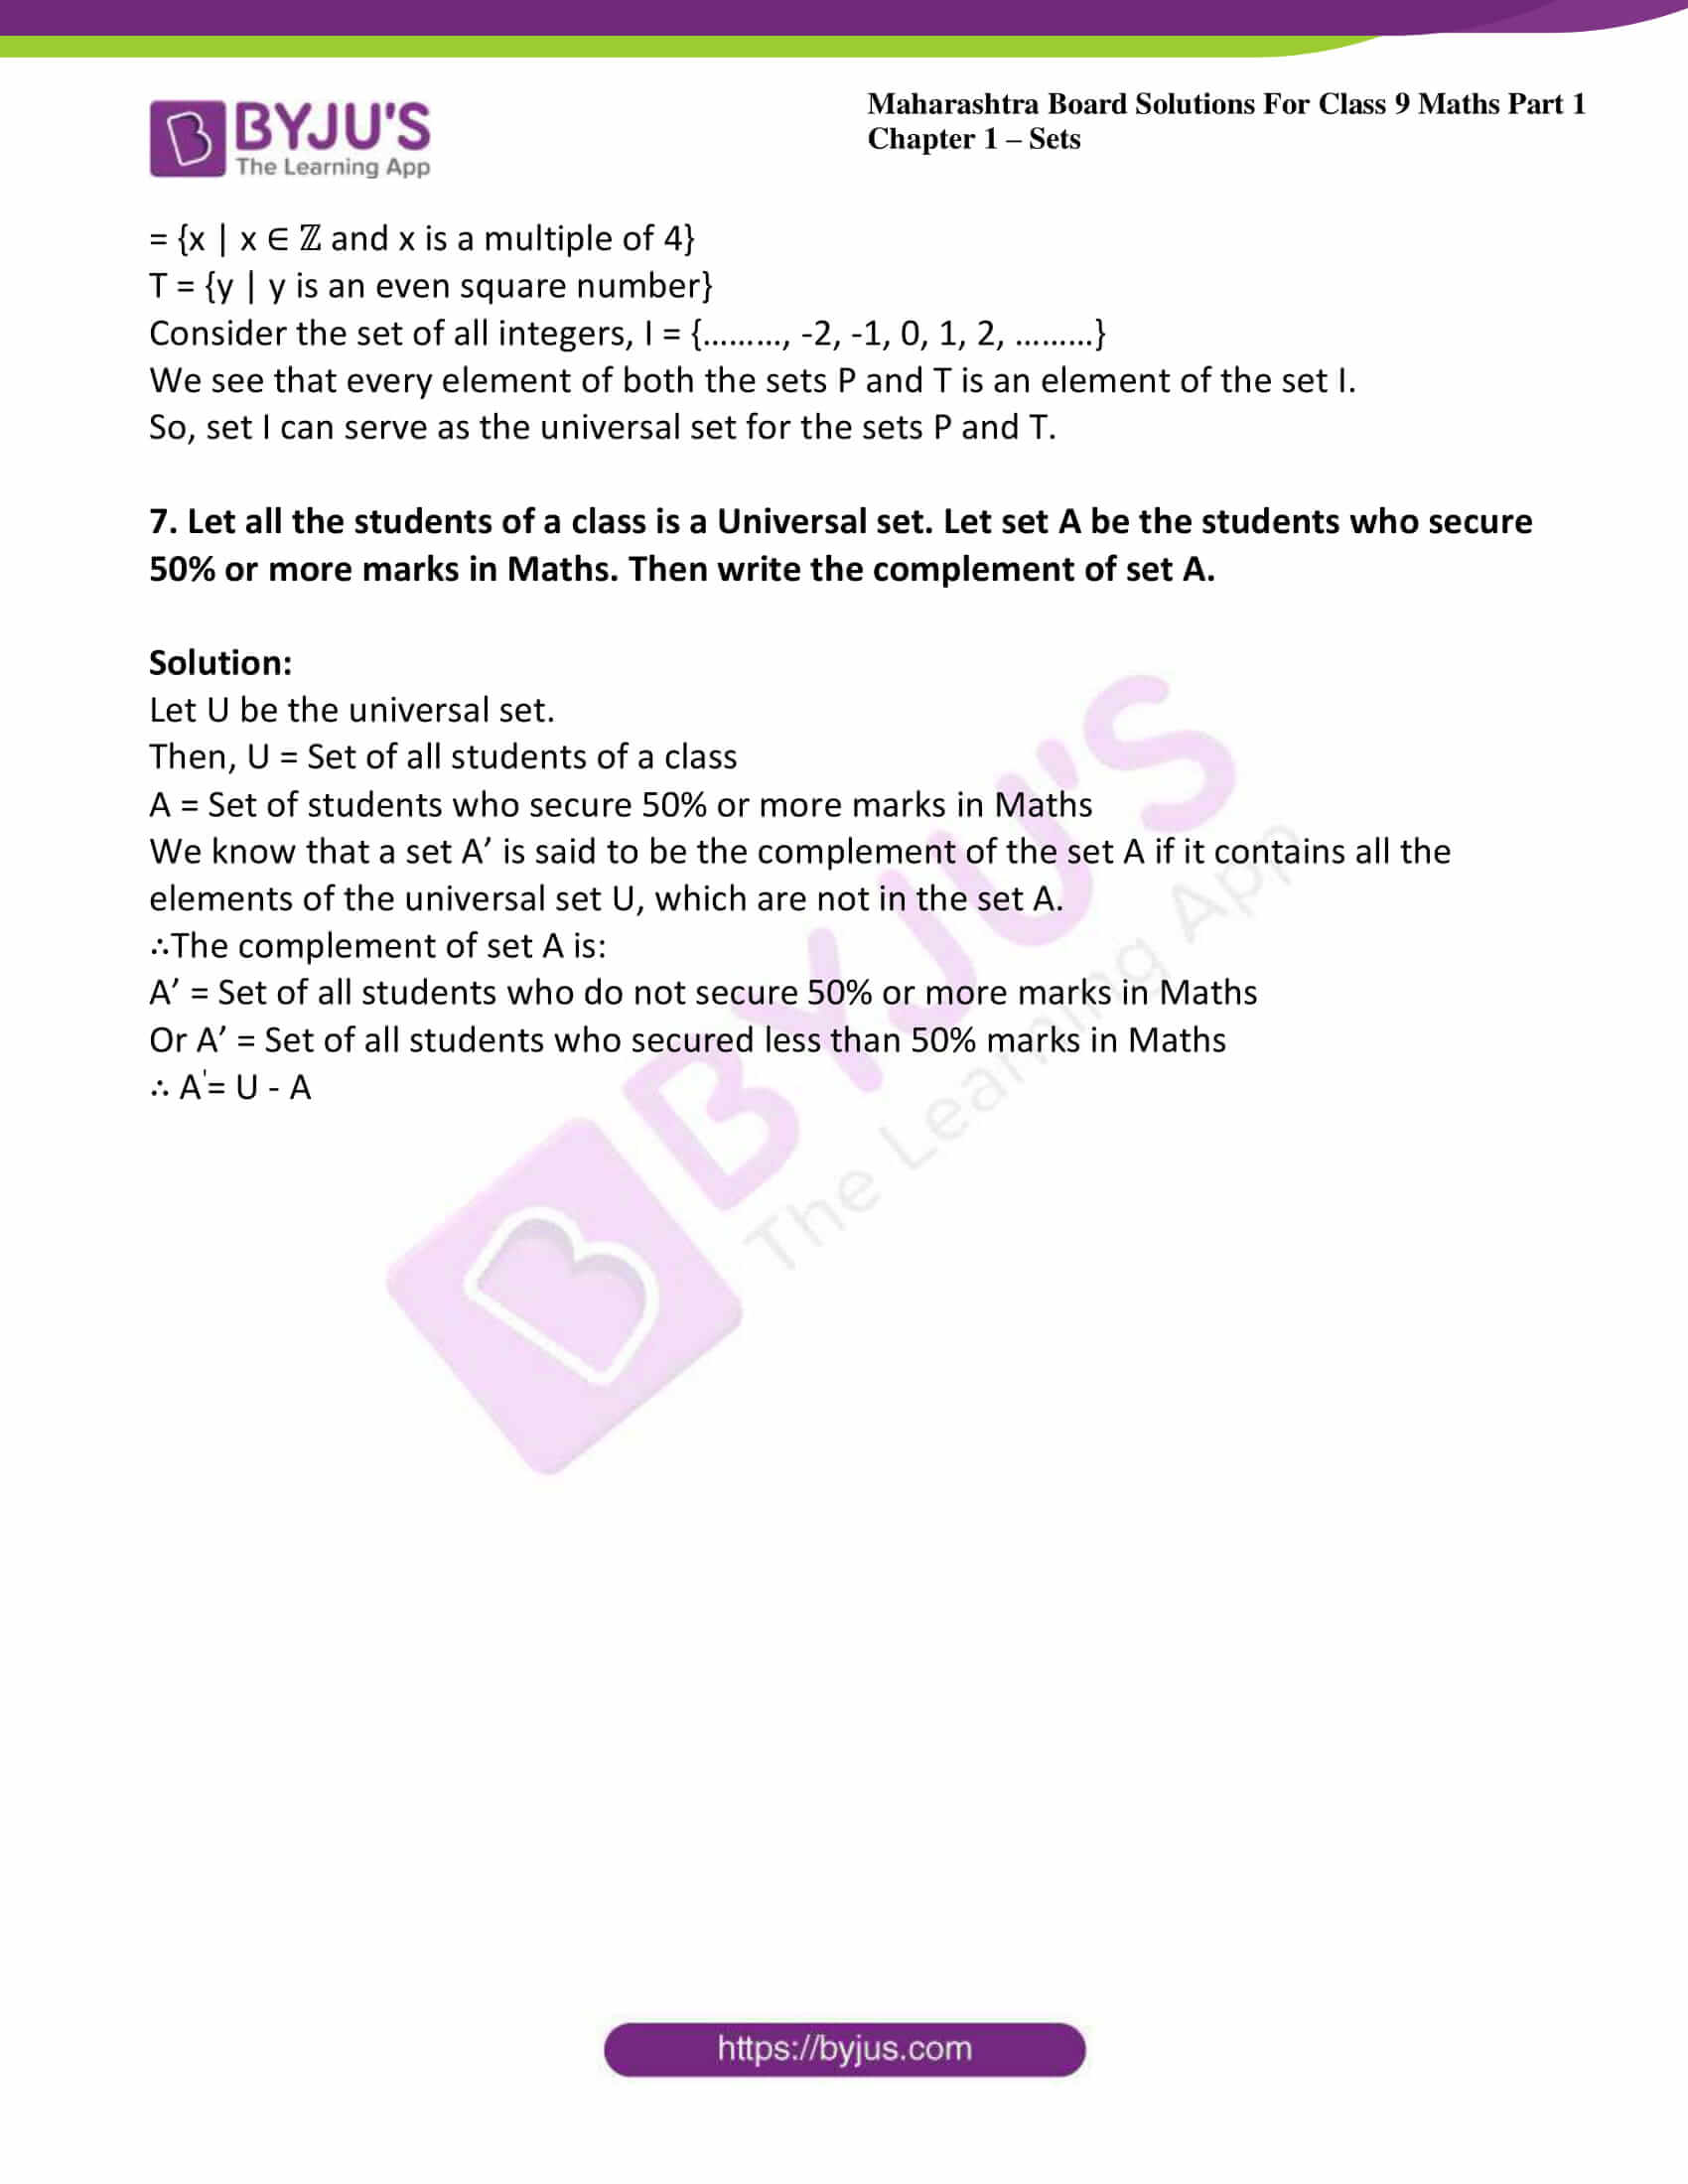 msbshse sol class 9 maths part 1 chapter 1 sets 12